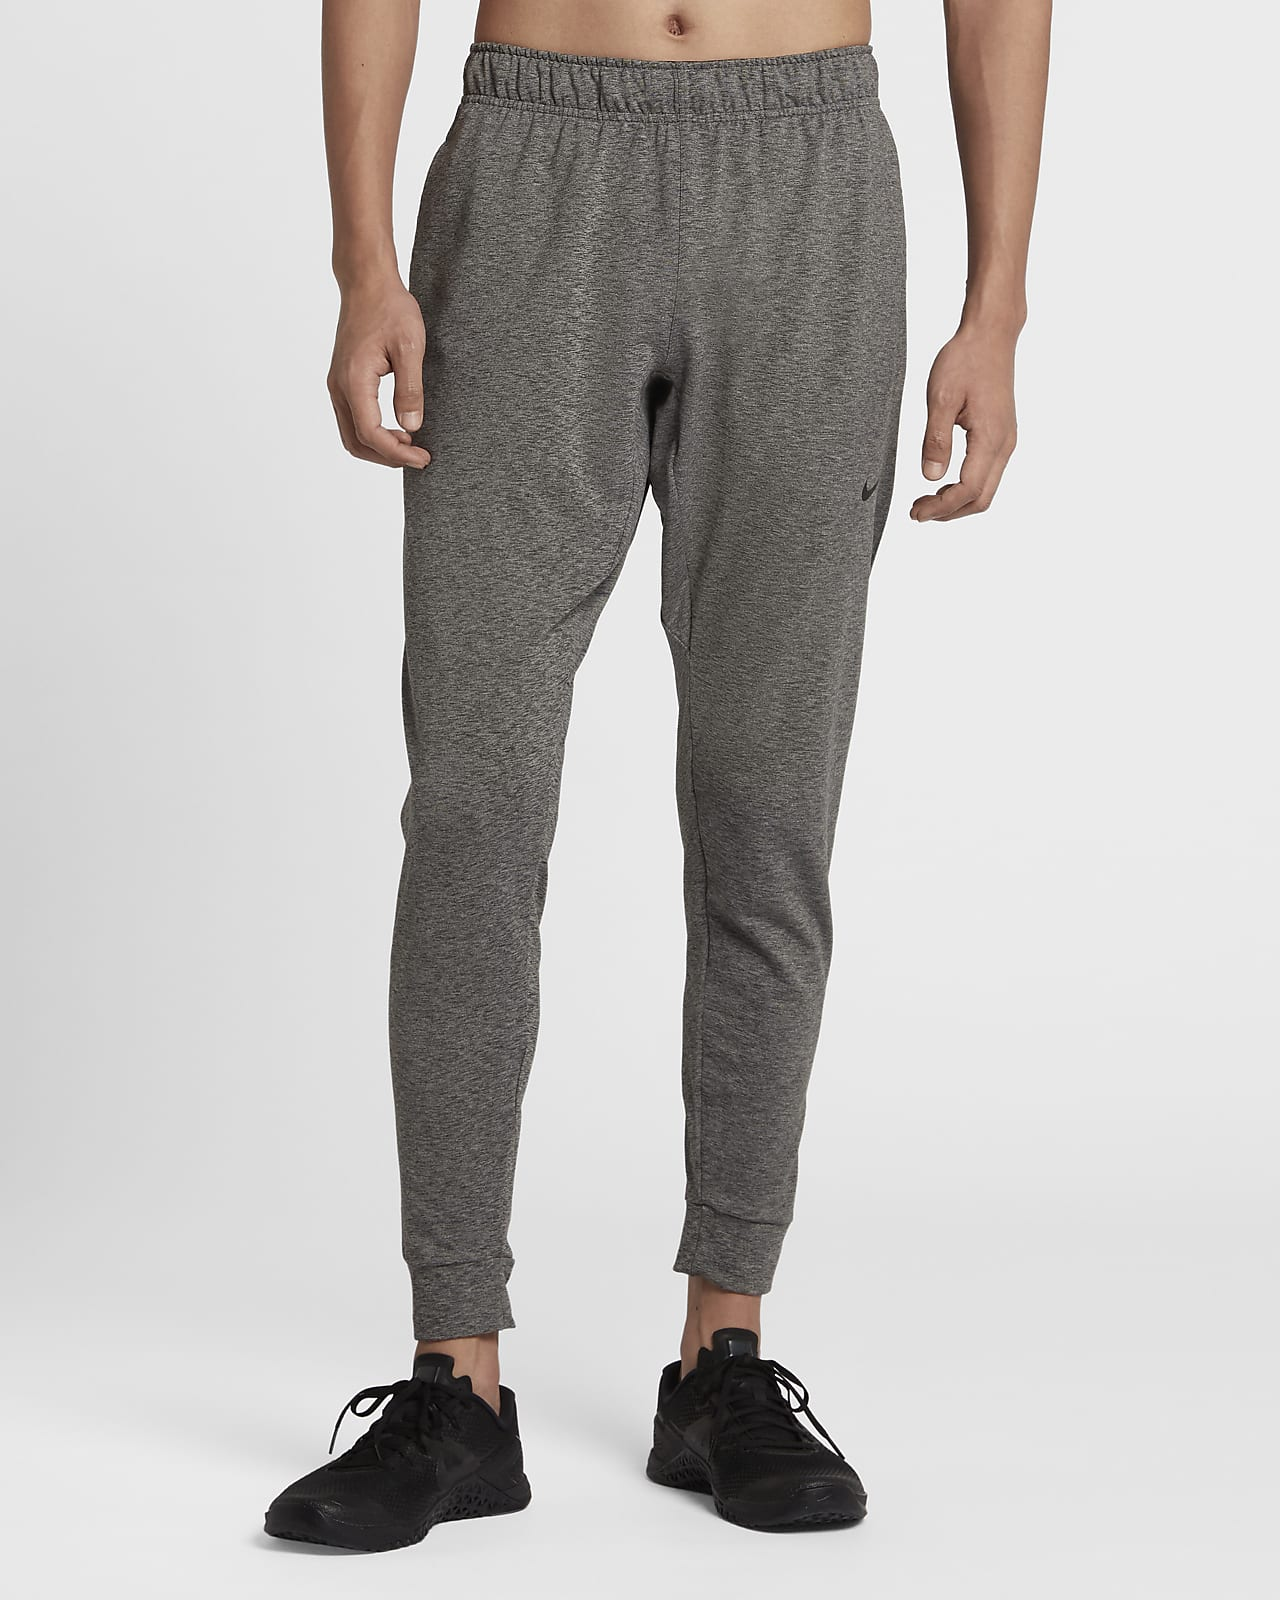 Nike Dri-FIT Men's Yoga Training Trousers